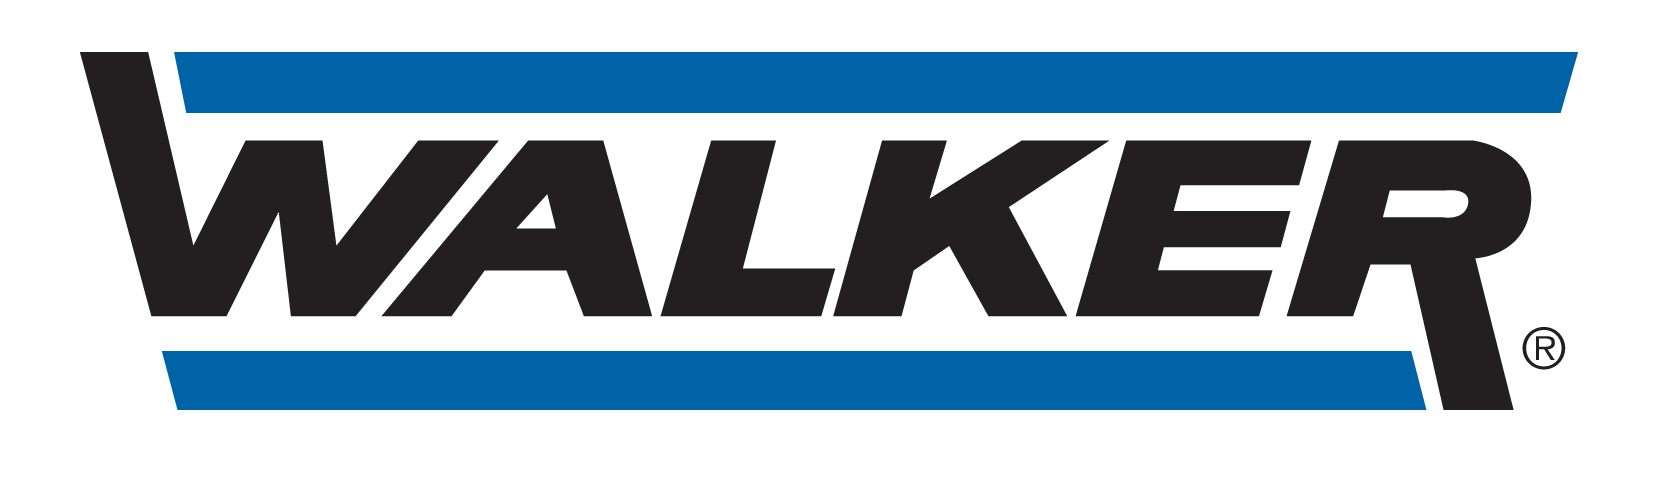 SARL ALEX AUTOMOBILES - logo Walker